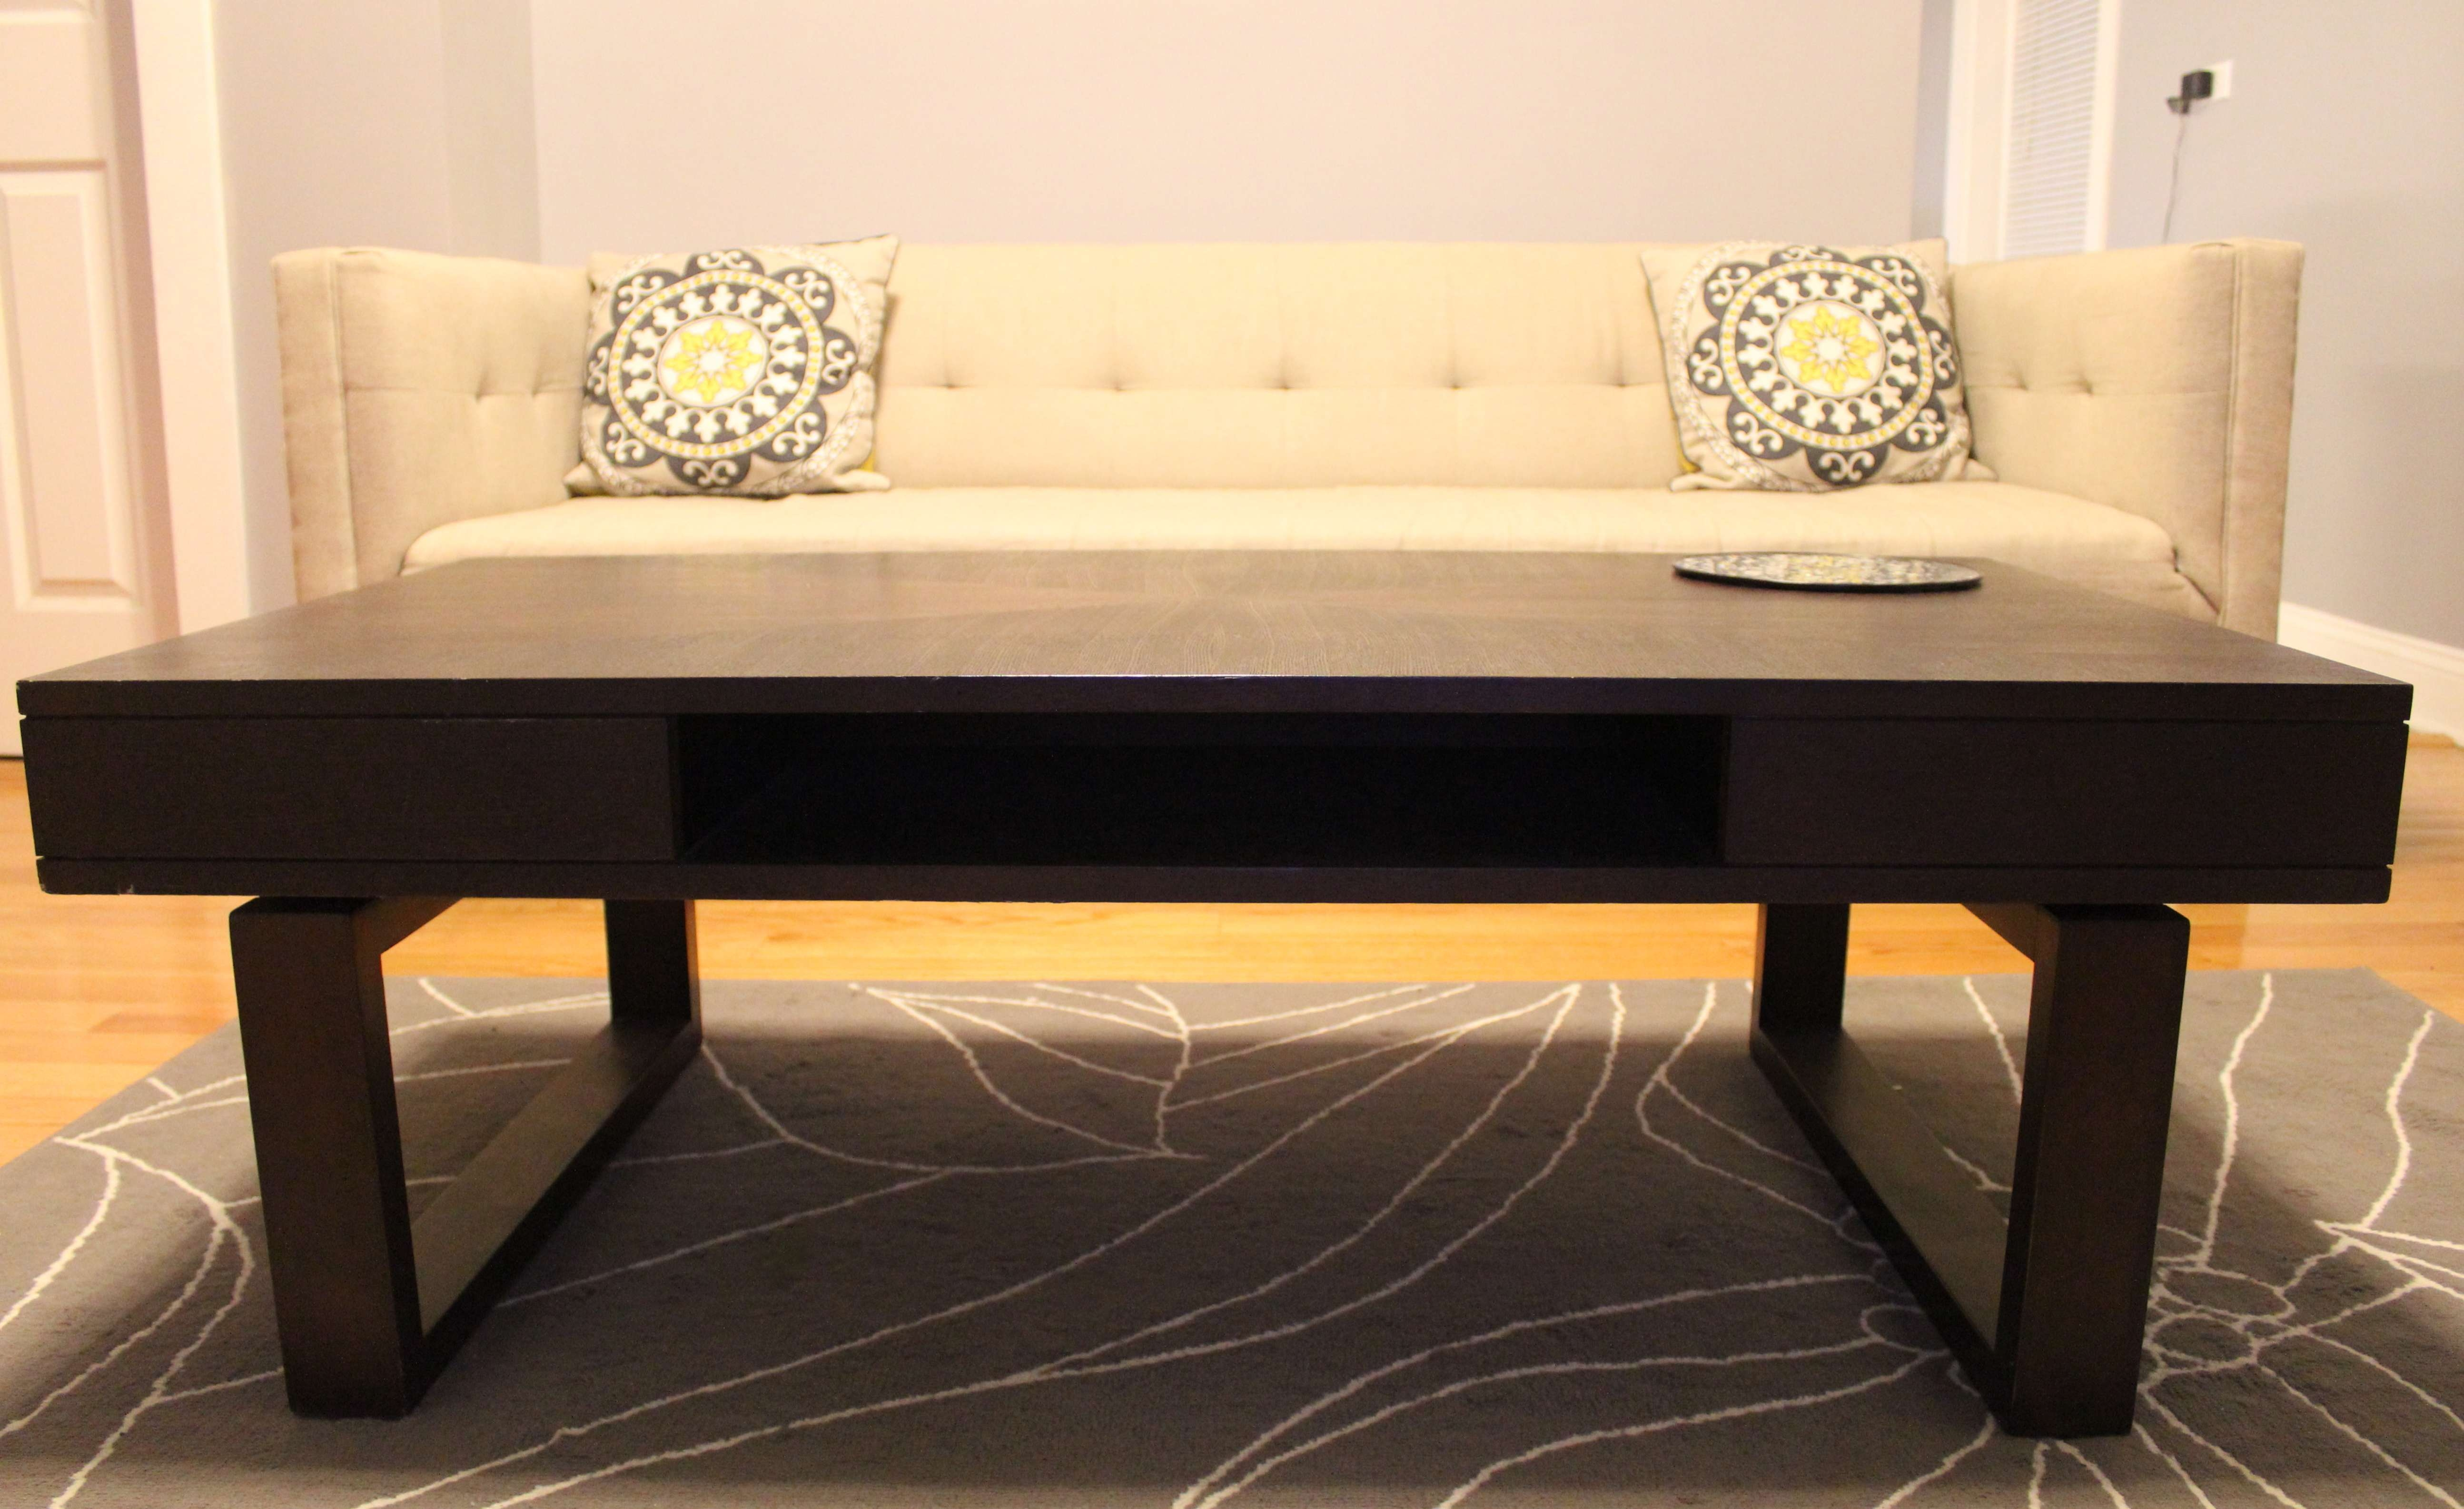 Home Design: How Tall Is Coffee Table Mr Homes And Heels Home Inside Well Known High Coffee Tables (Gallery 8 of 20)